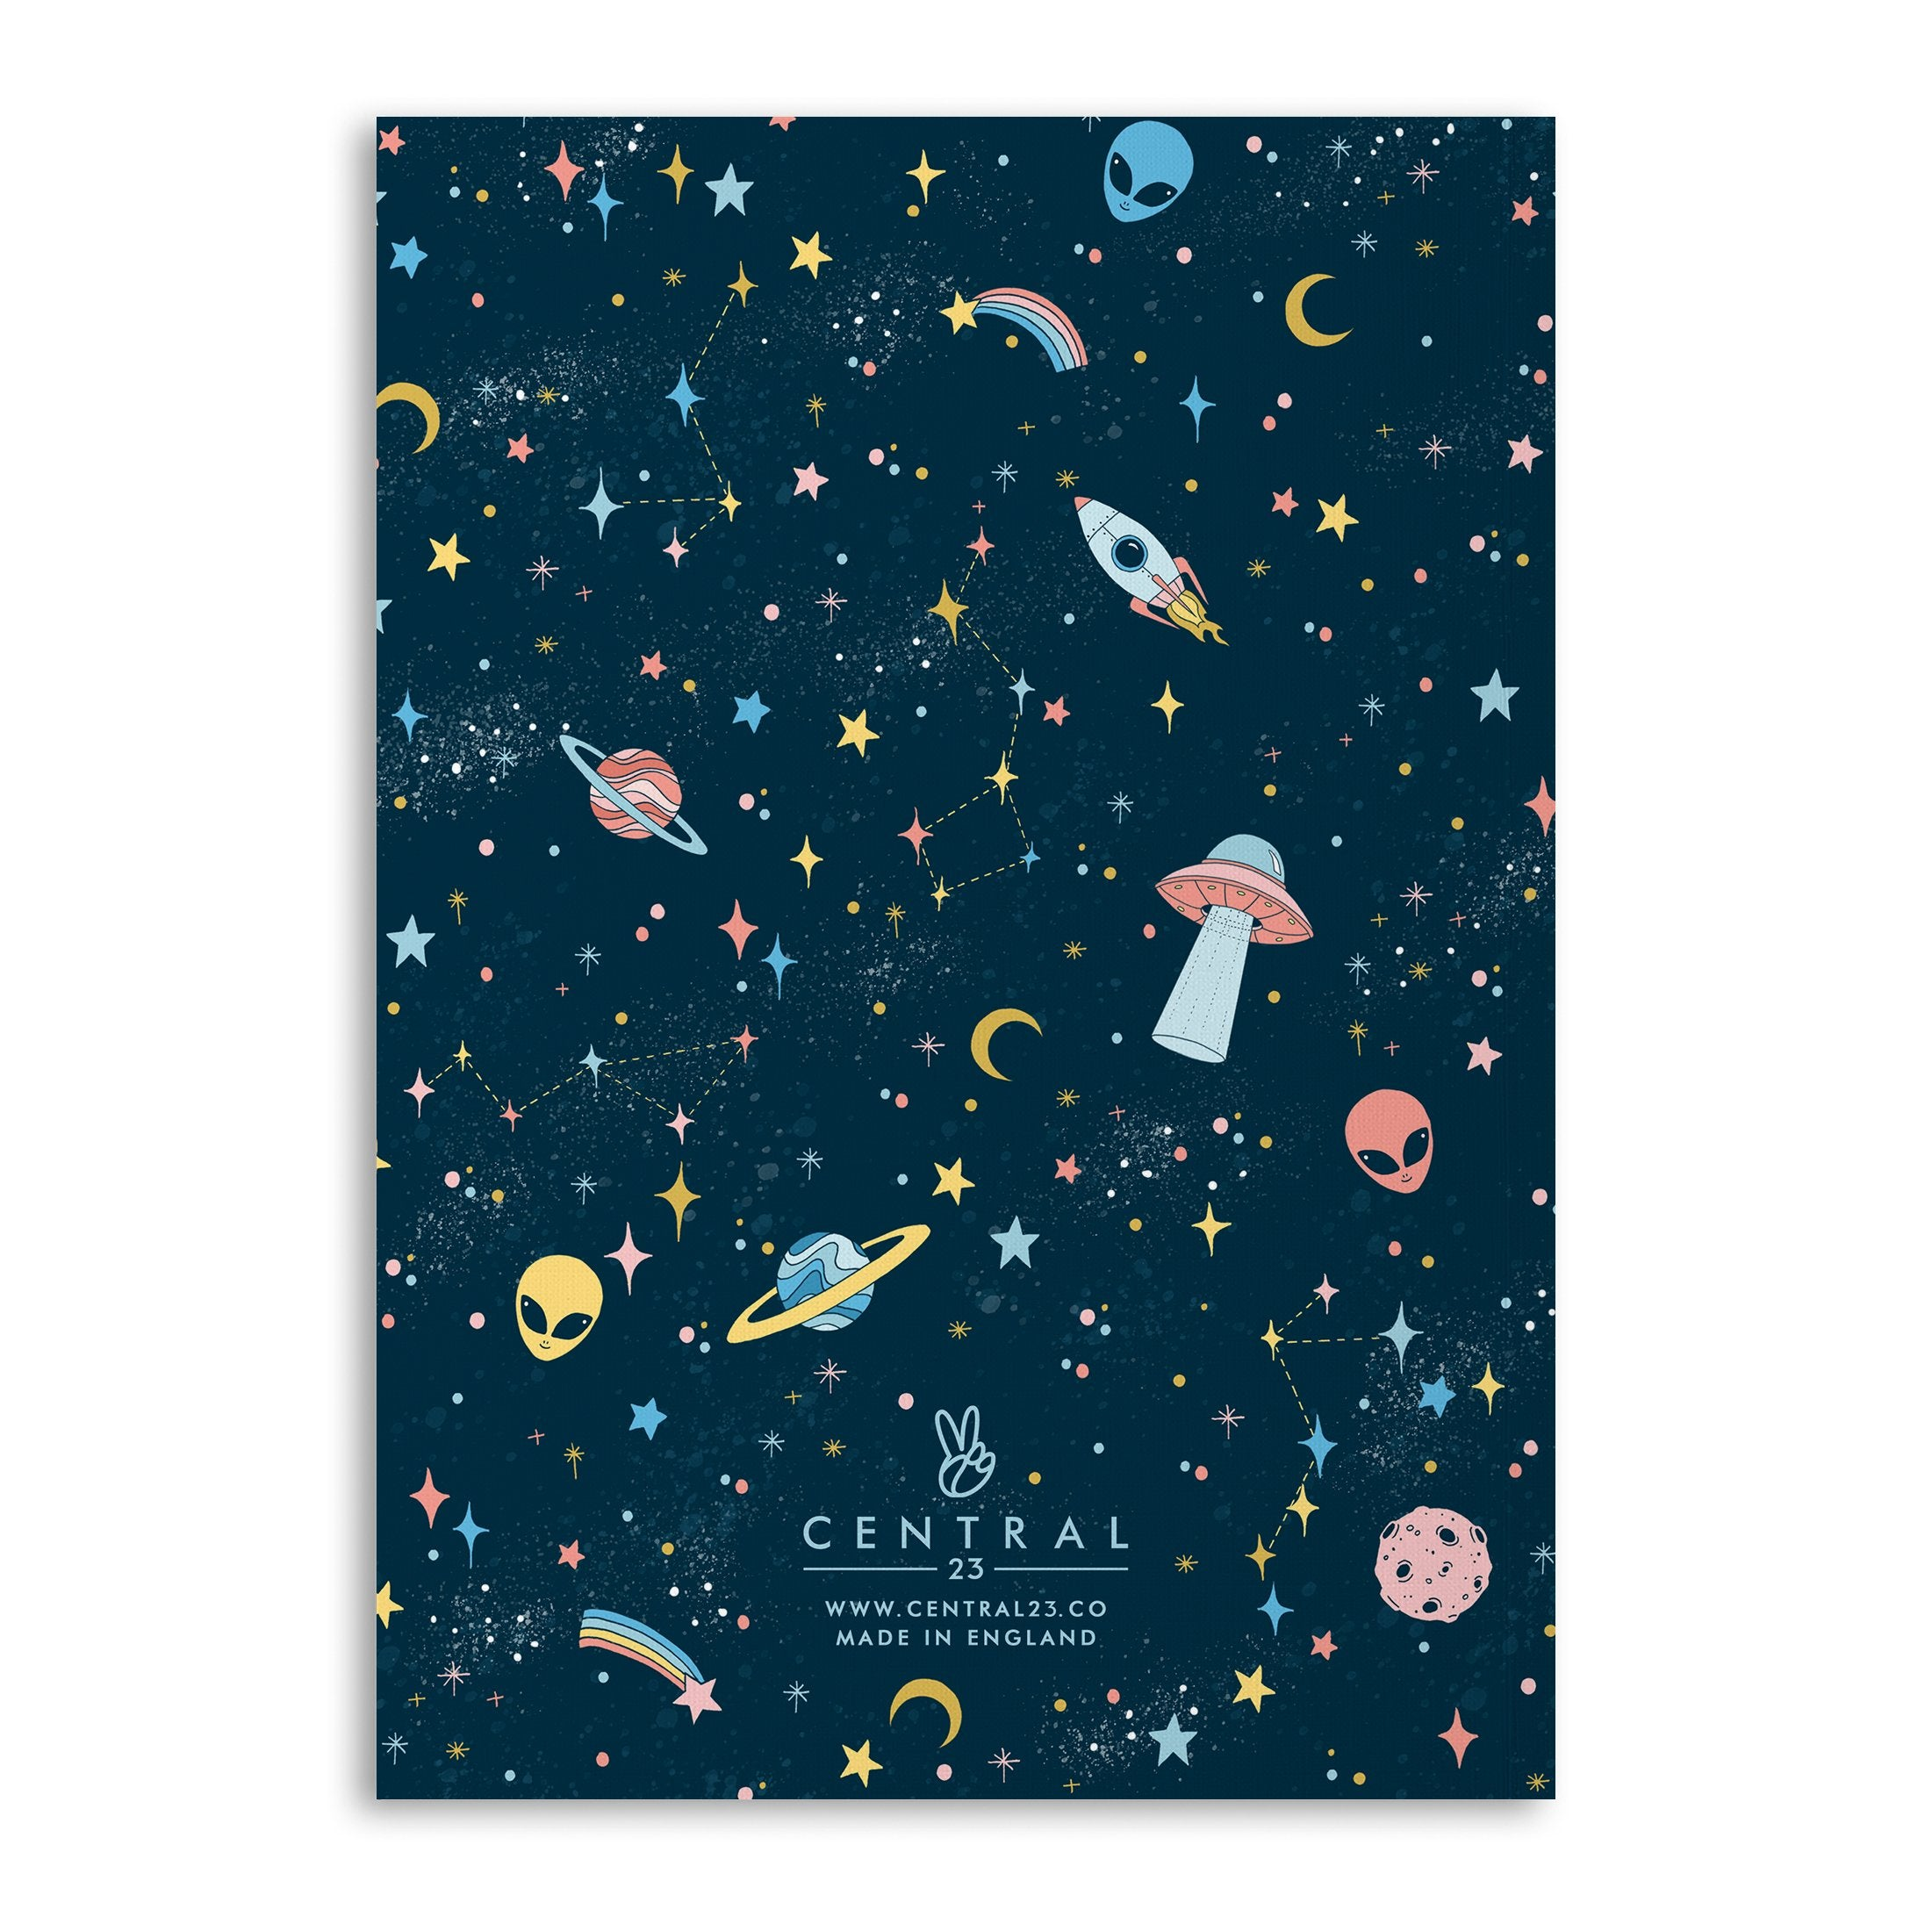 Celestial Notebooks (Pack Of 4 - 120 Pages)